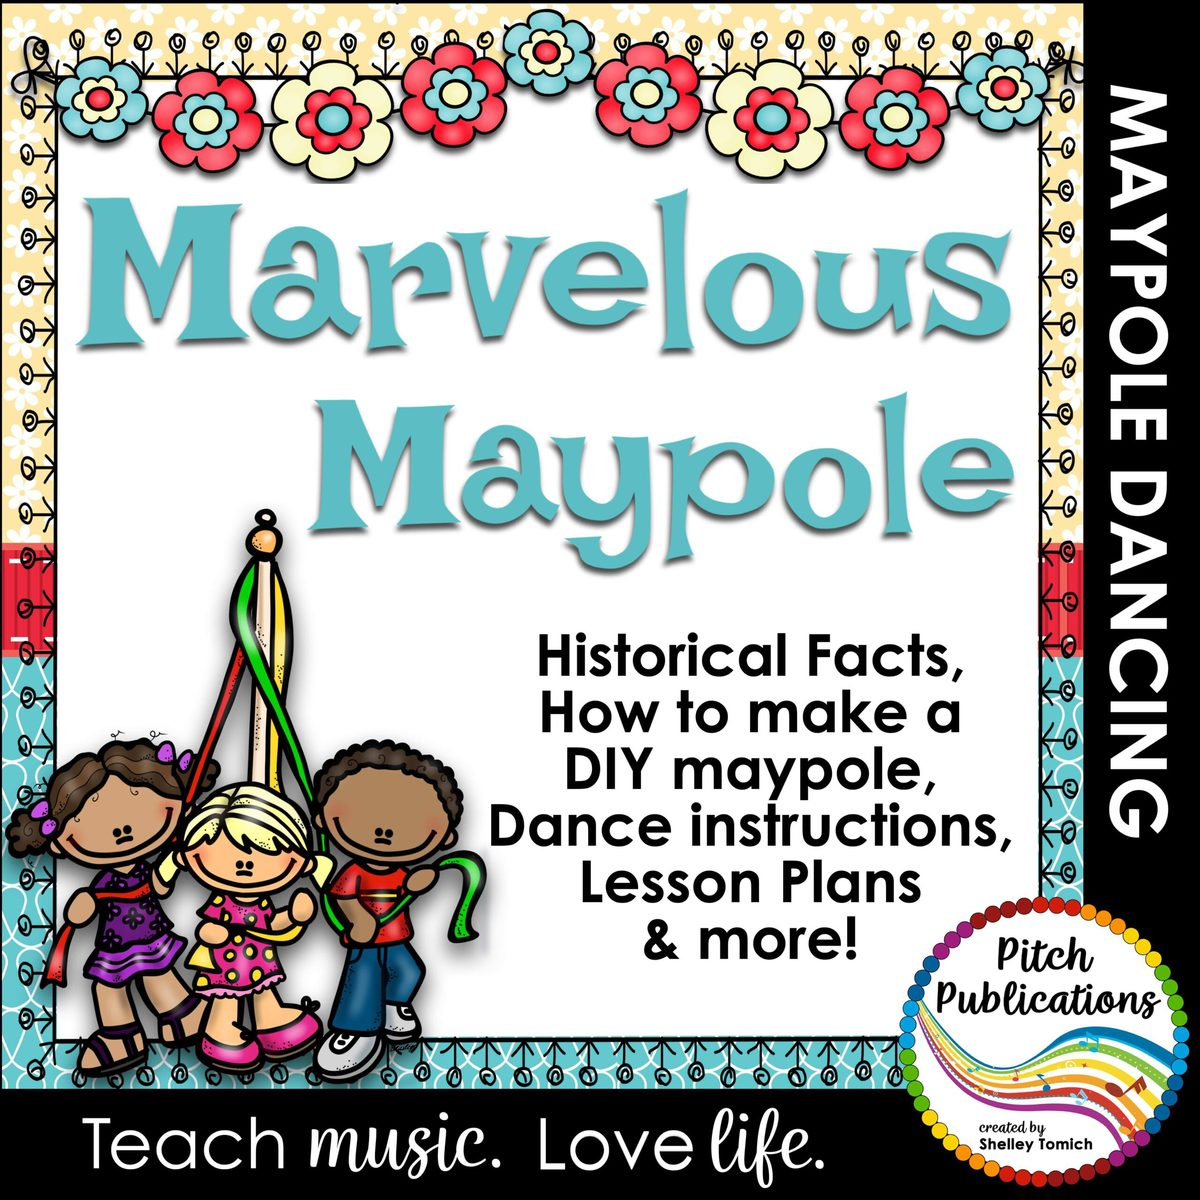 """The cover includes a cartoon drawing of three students creating a maypole. The text on the cover says """"Marvelous Maypole: Historical Facts, how to make a DIY maypole, dance instructions, lesson plans, and more!"""